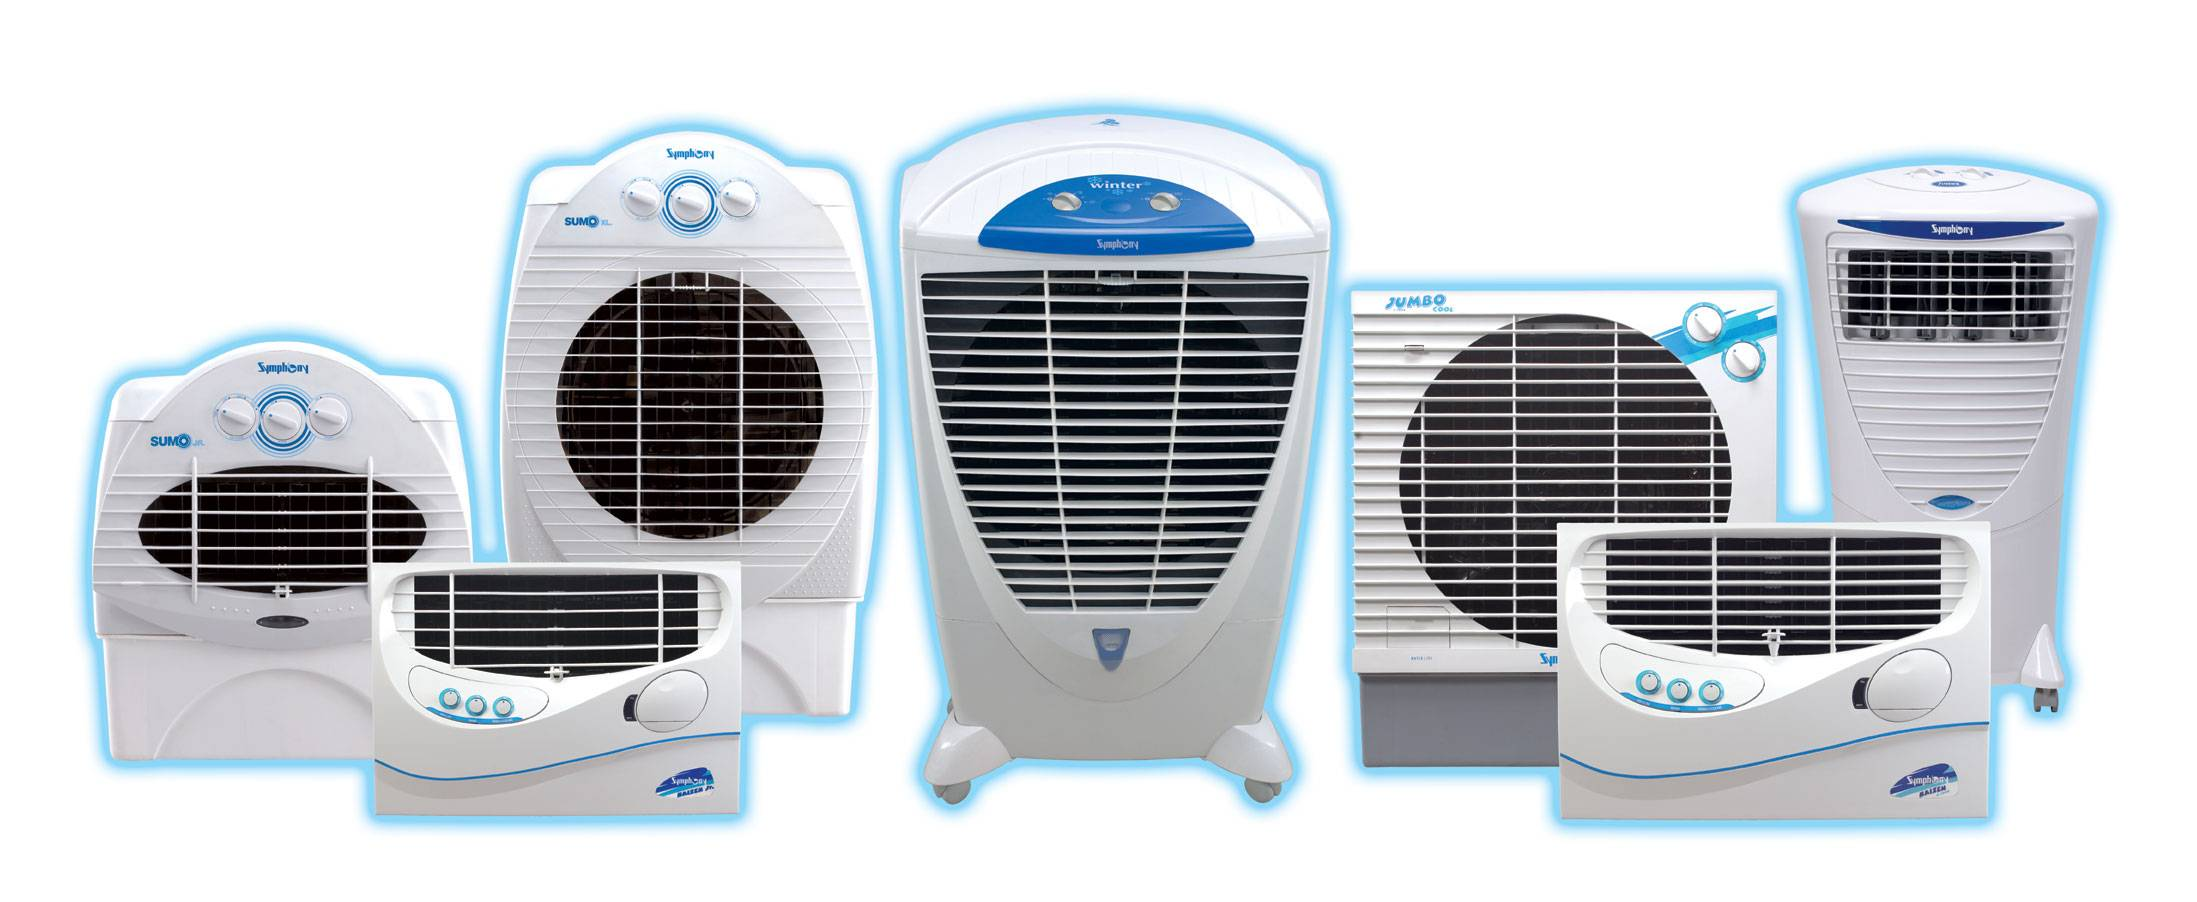 Evaporative Air Coolers #2080AB